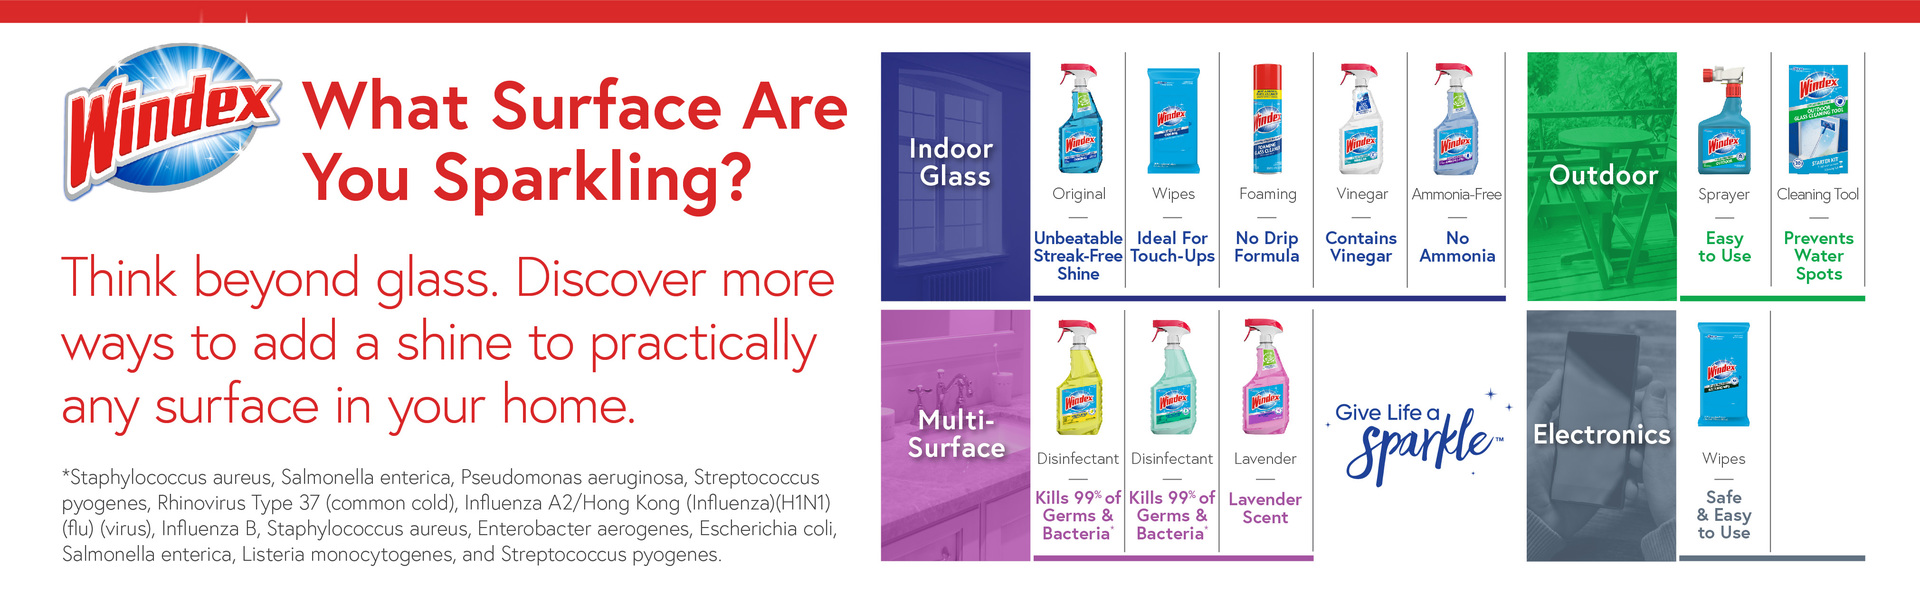 What surface are you sparkling?